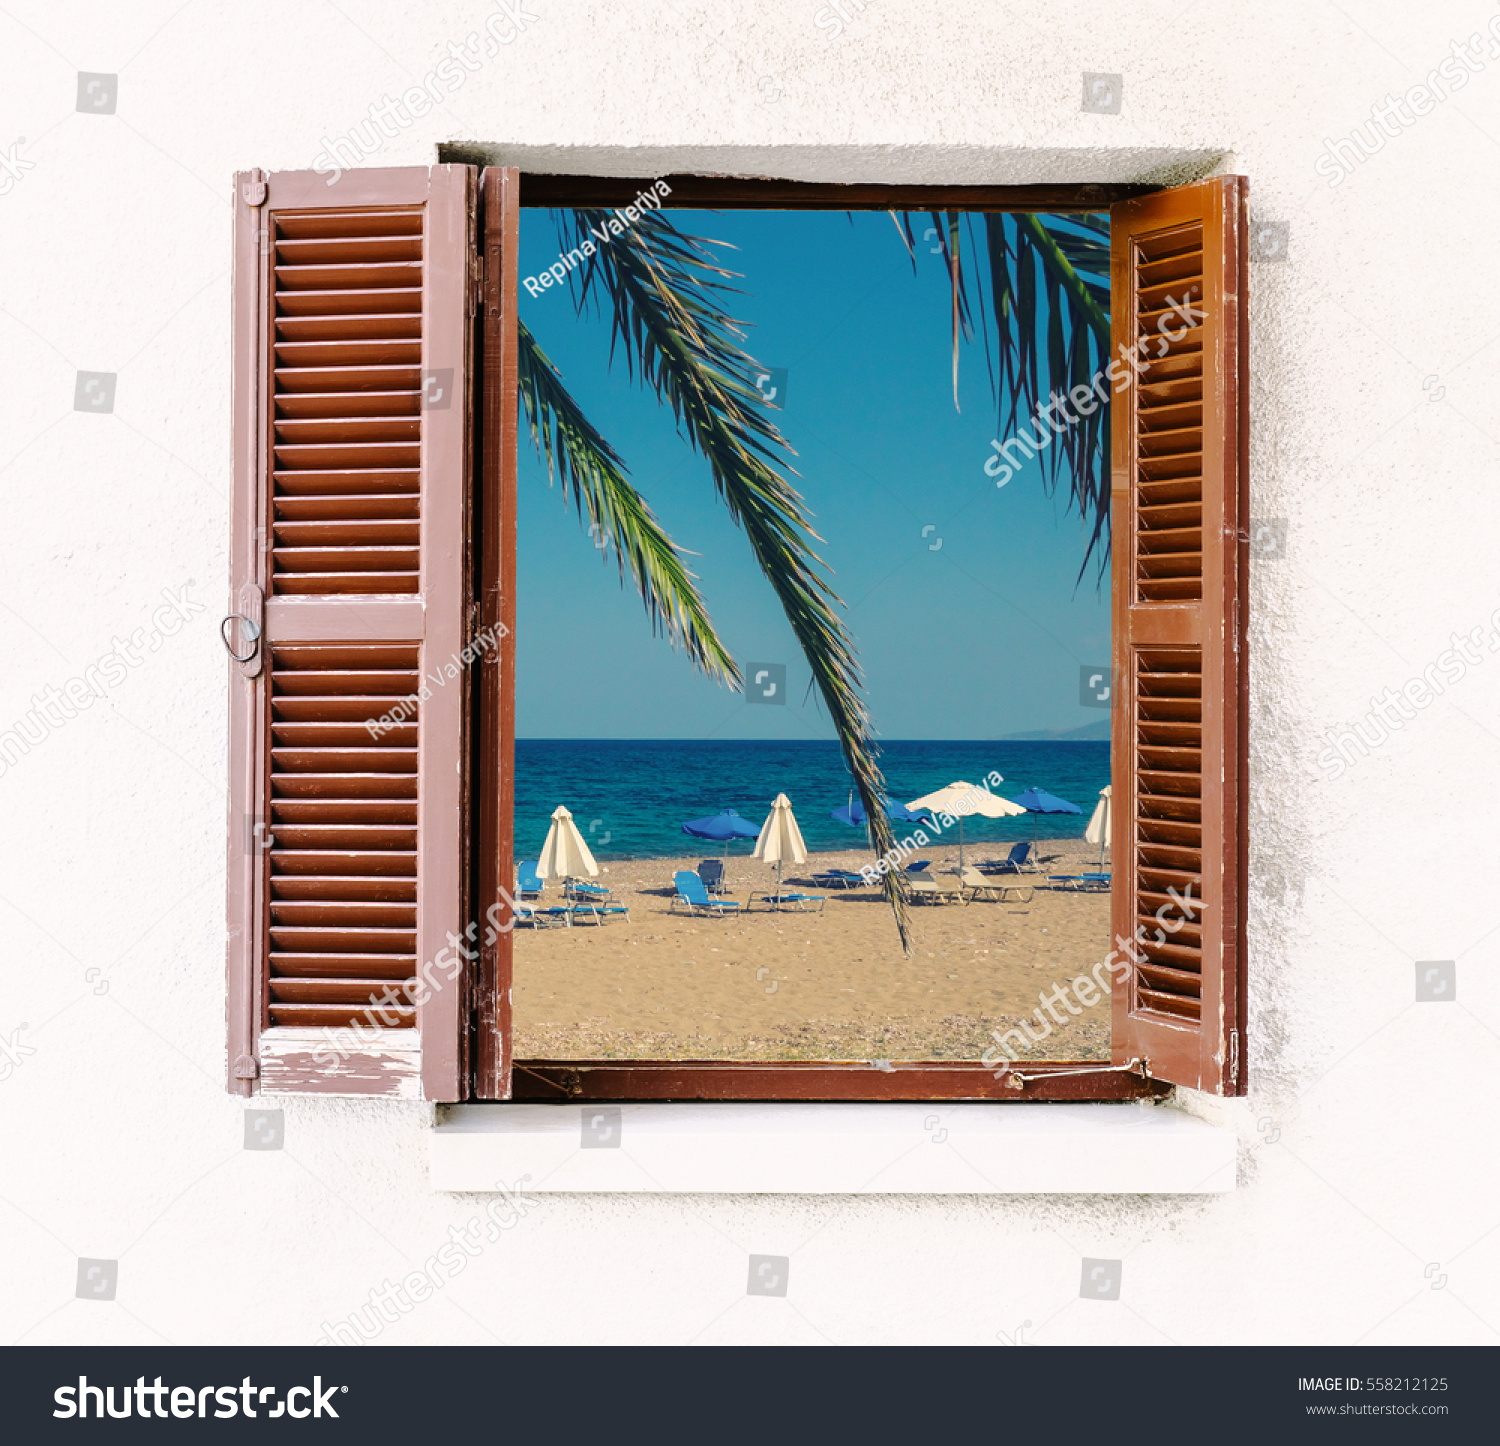 Open window beach - Open Window Of The Old House With Brown Wooden Shutters And Seaside View Summer Beach